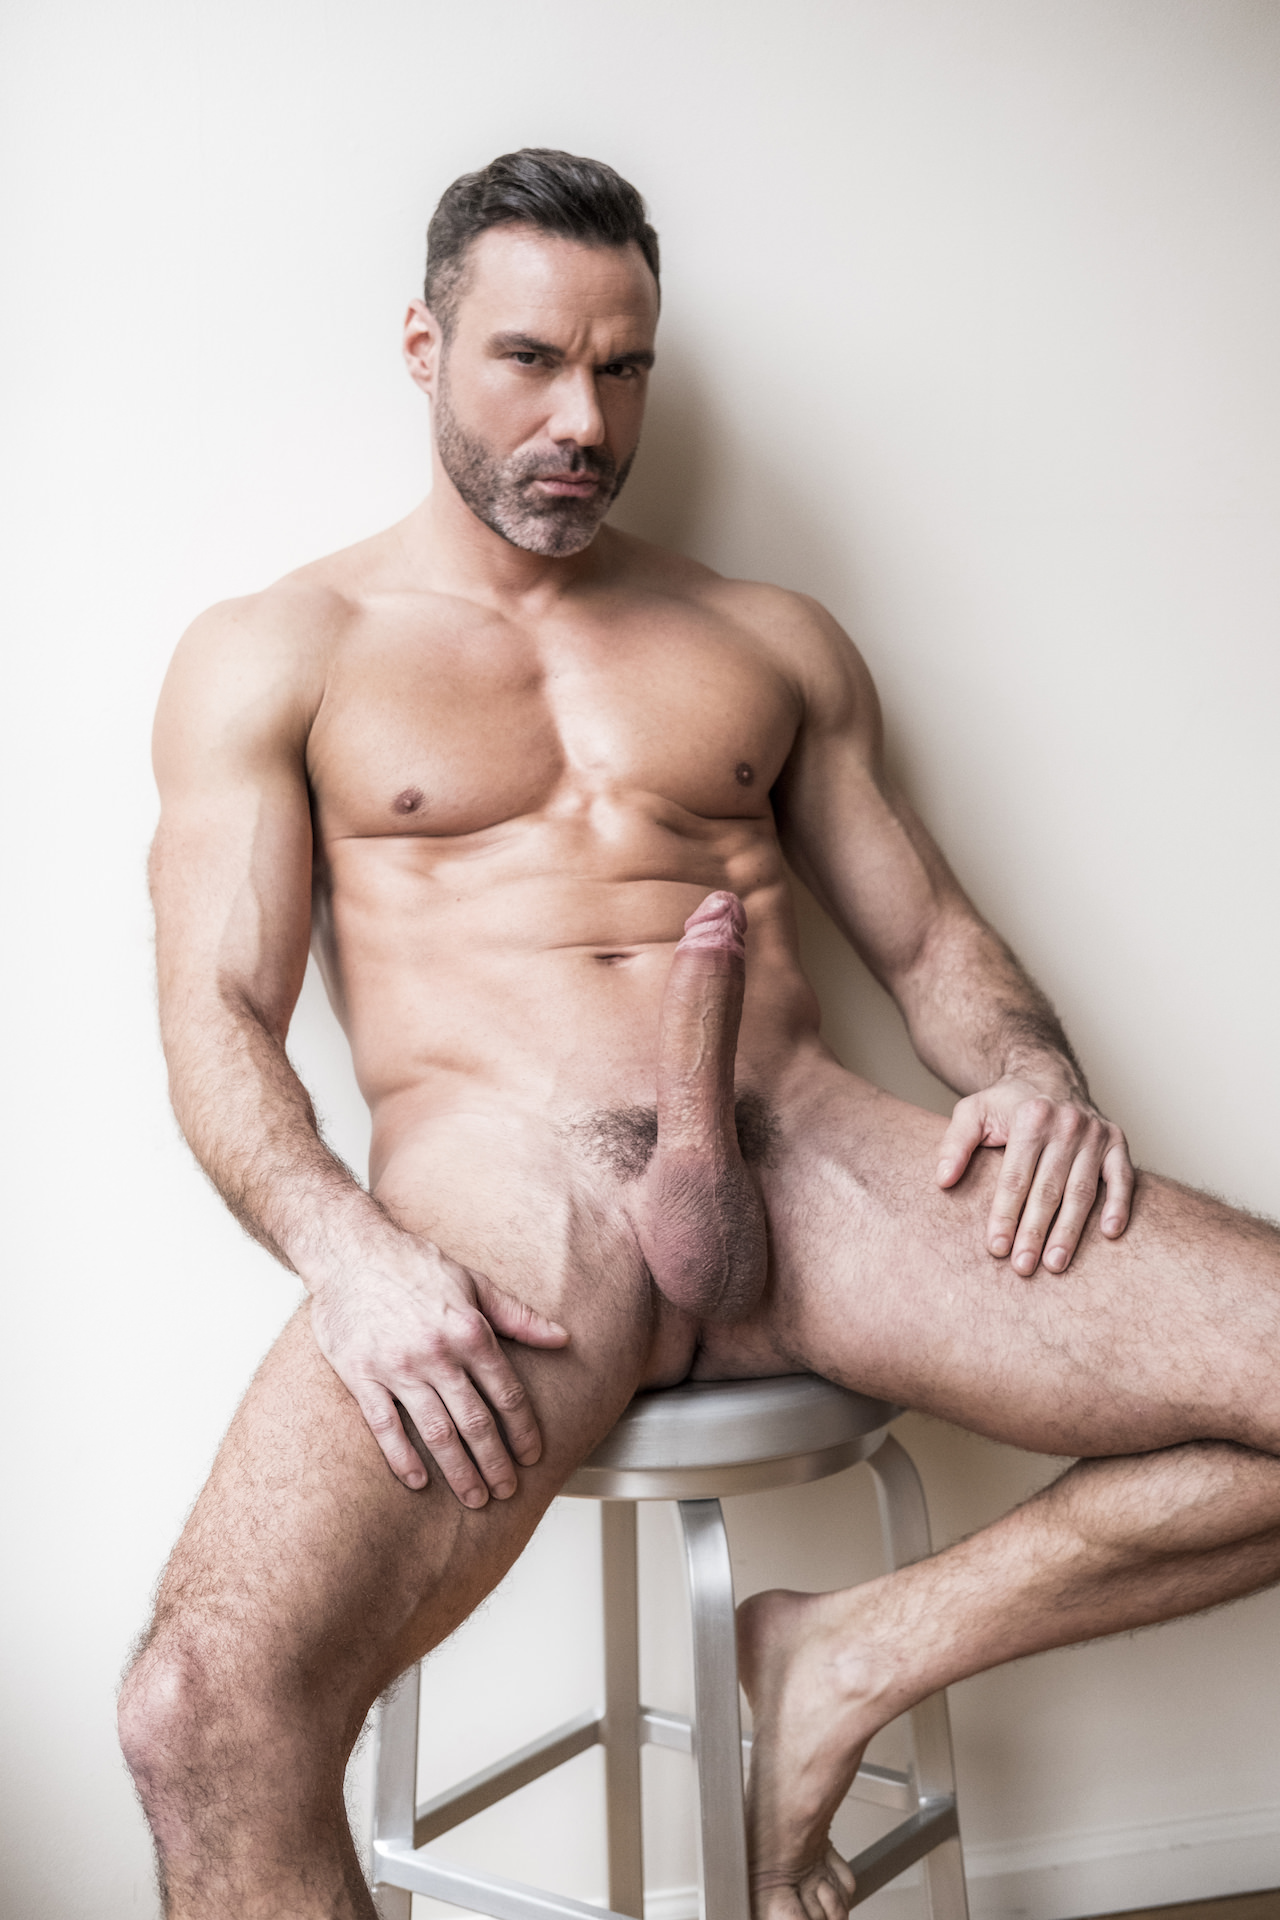 42 year old gay bottom guy looking for relationship I